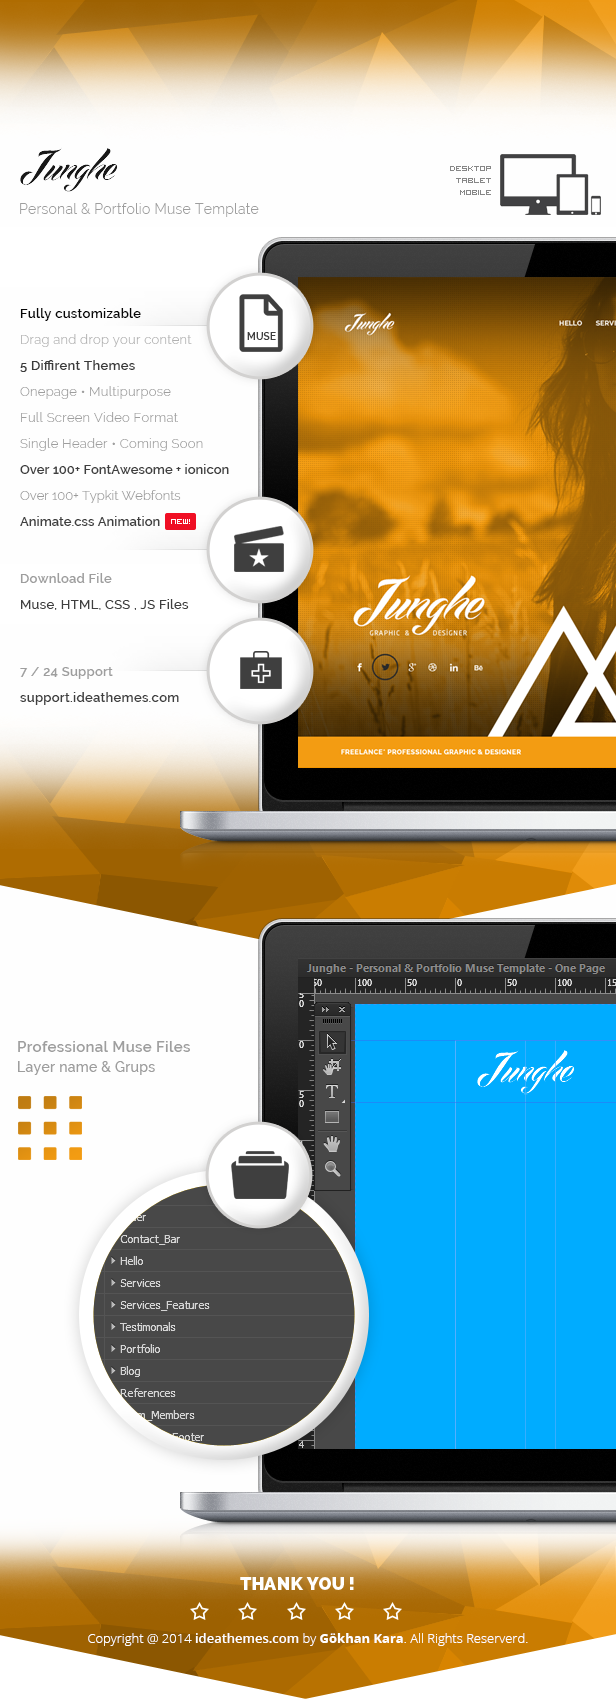 Junghe - Personal & Portfolio Muse Template